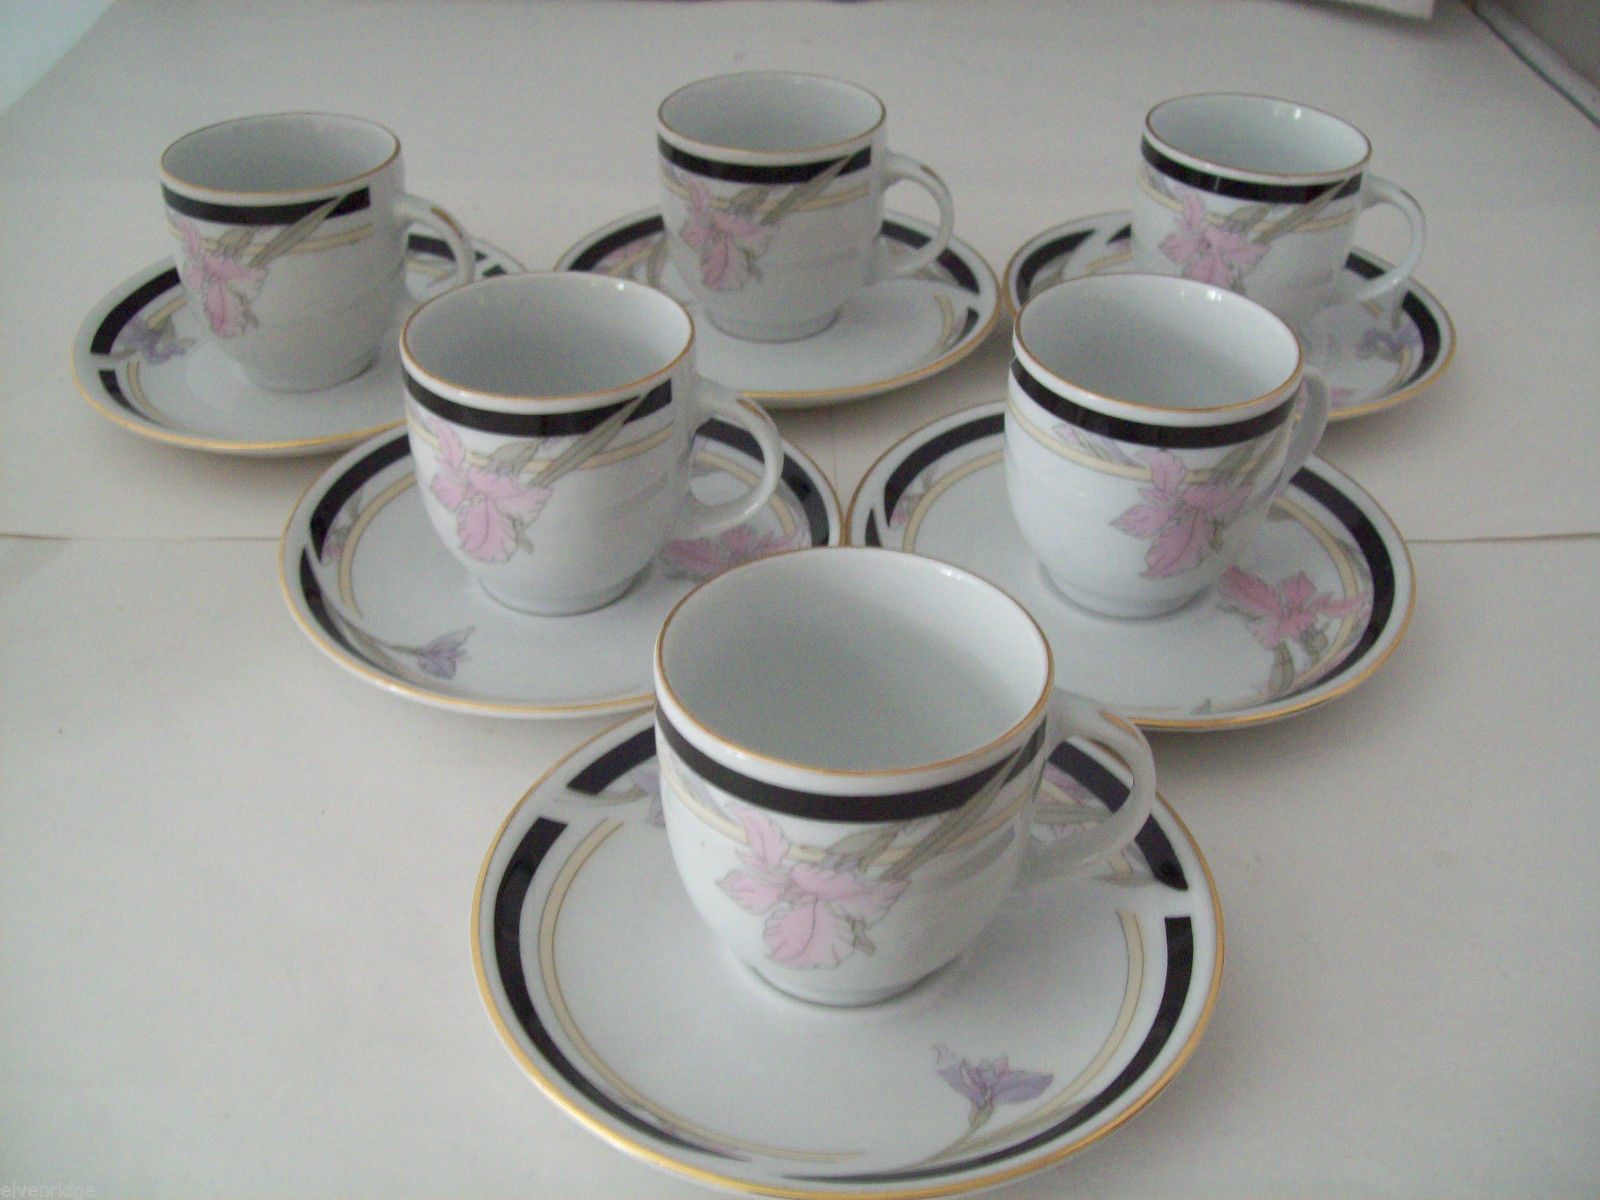 Realty Fine Porcelain Espresso Set 12 piece 6 cups and saucers